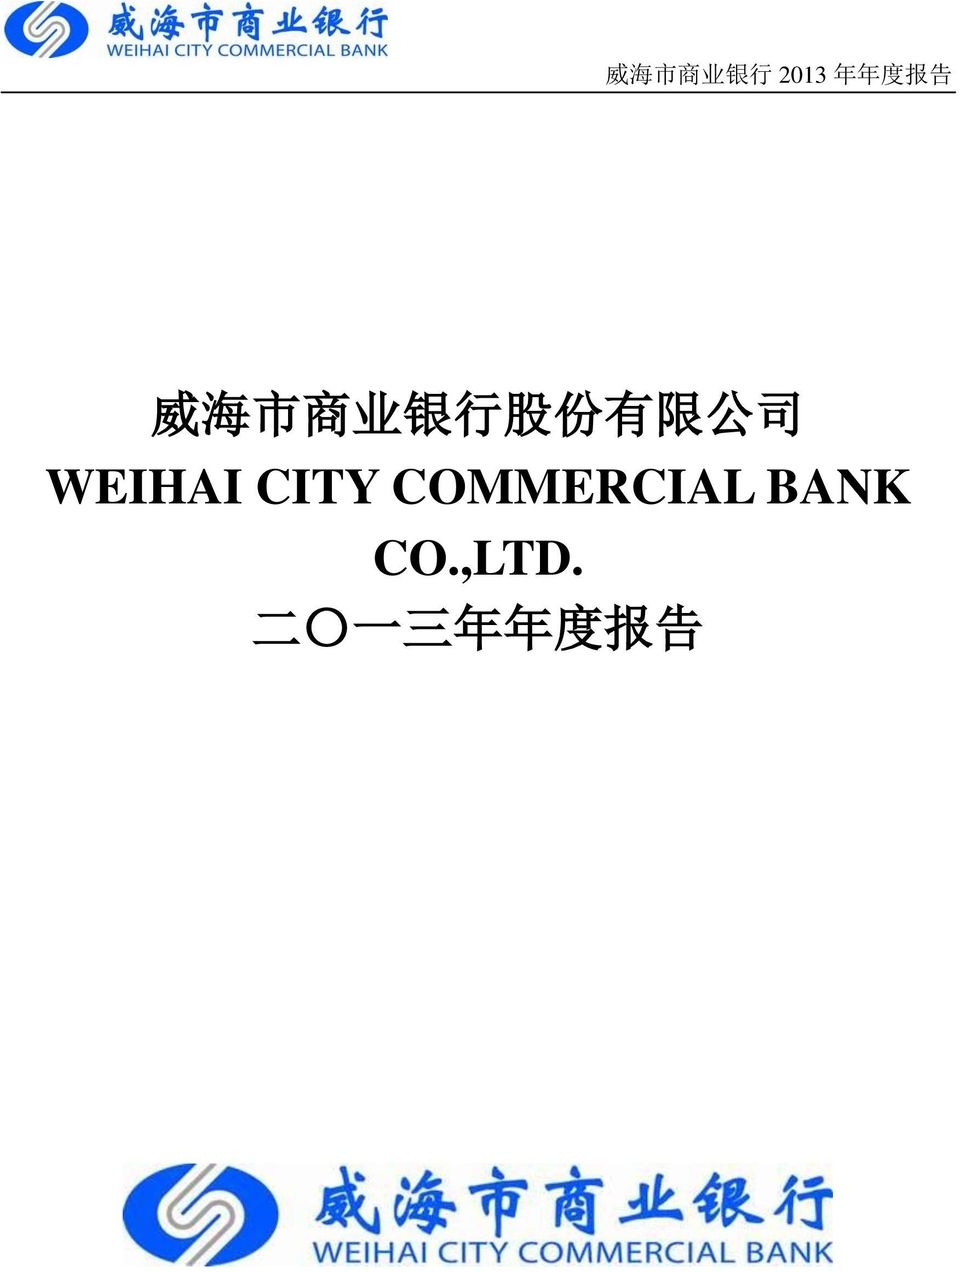 WEIHAI CITY COMMERCIAL BANK